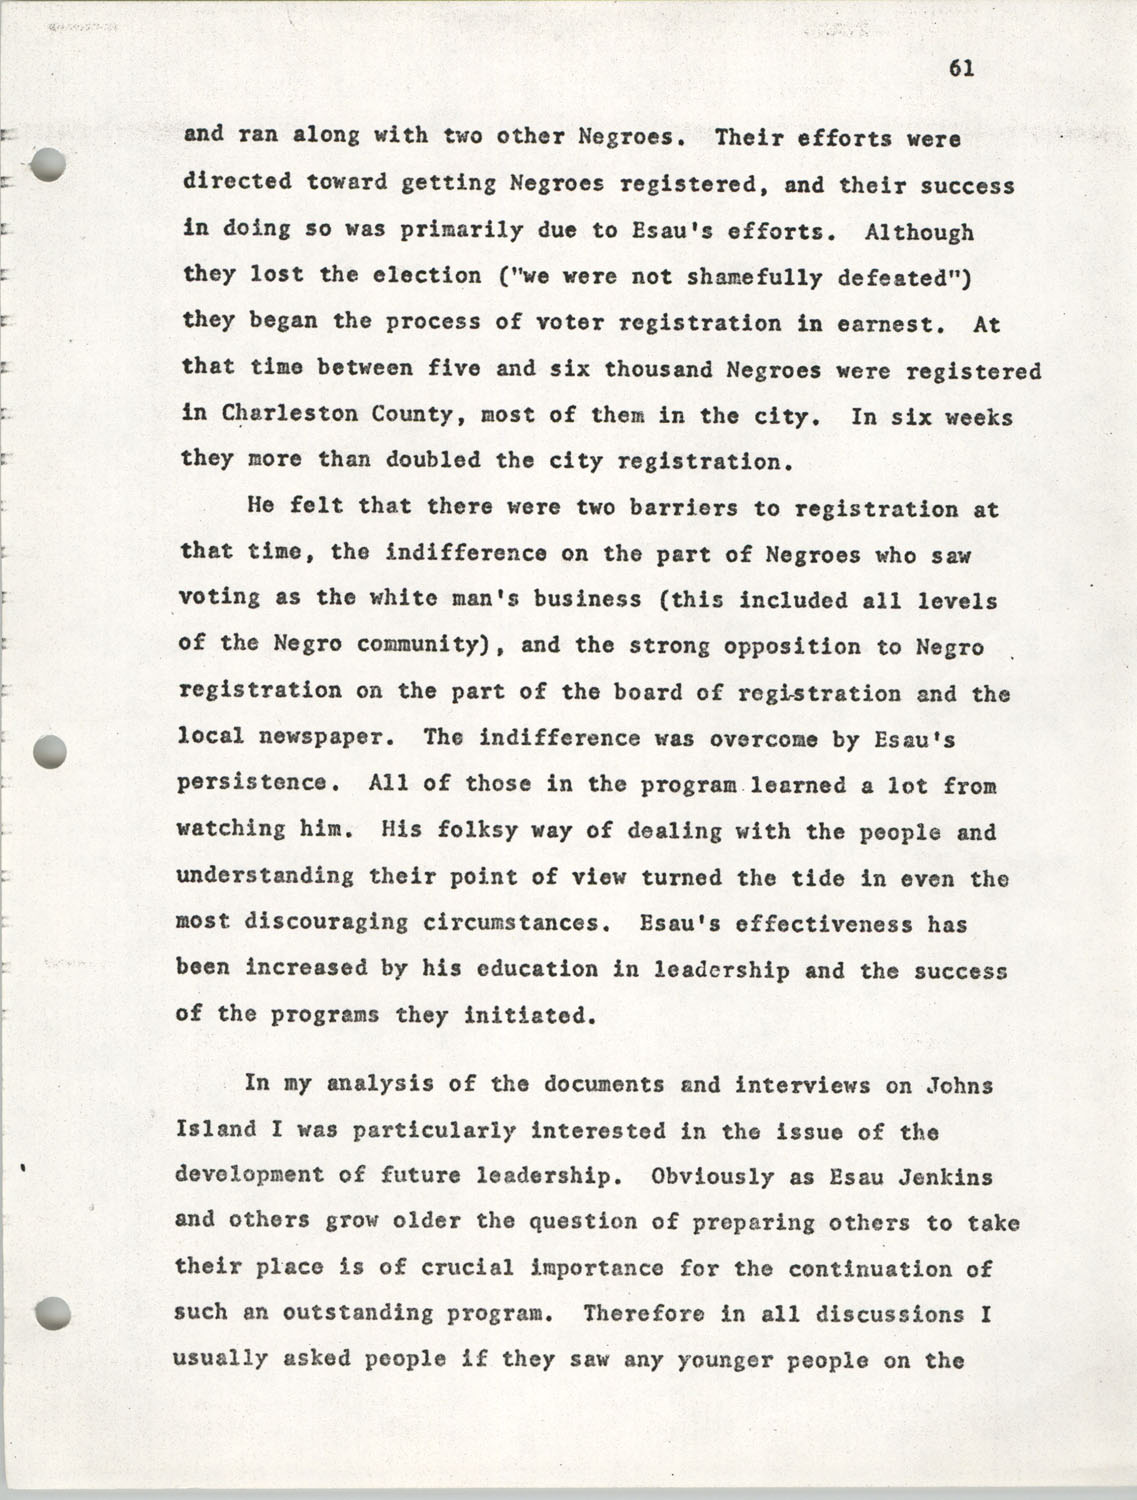 Citizen Participation. Democracy and Social Change, December 1, 1969, Page 61